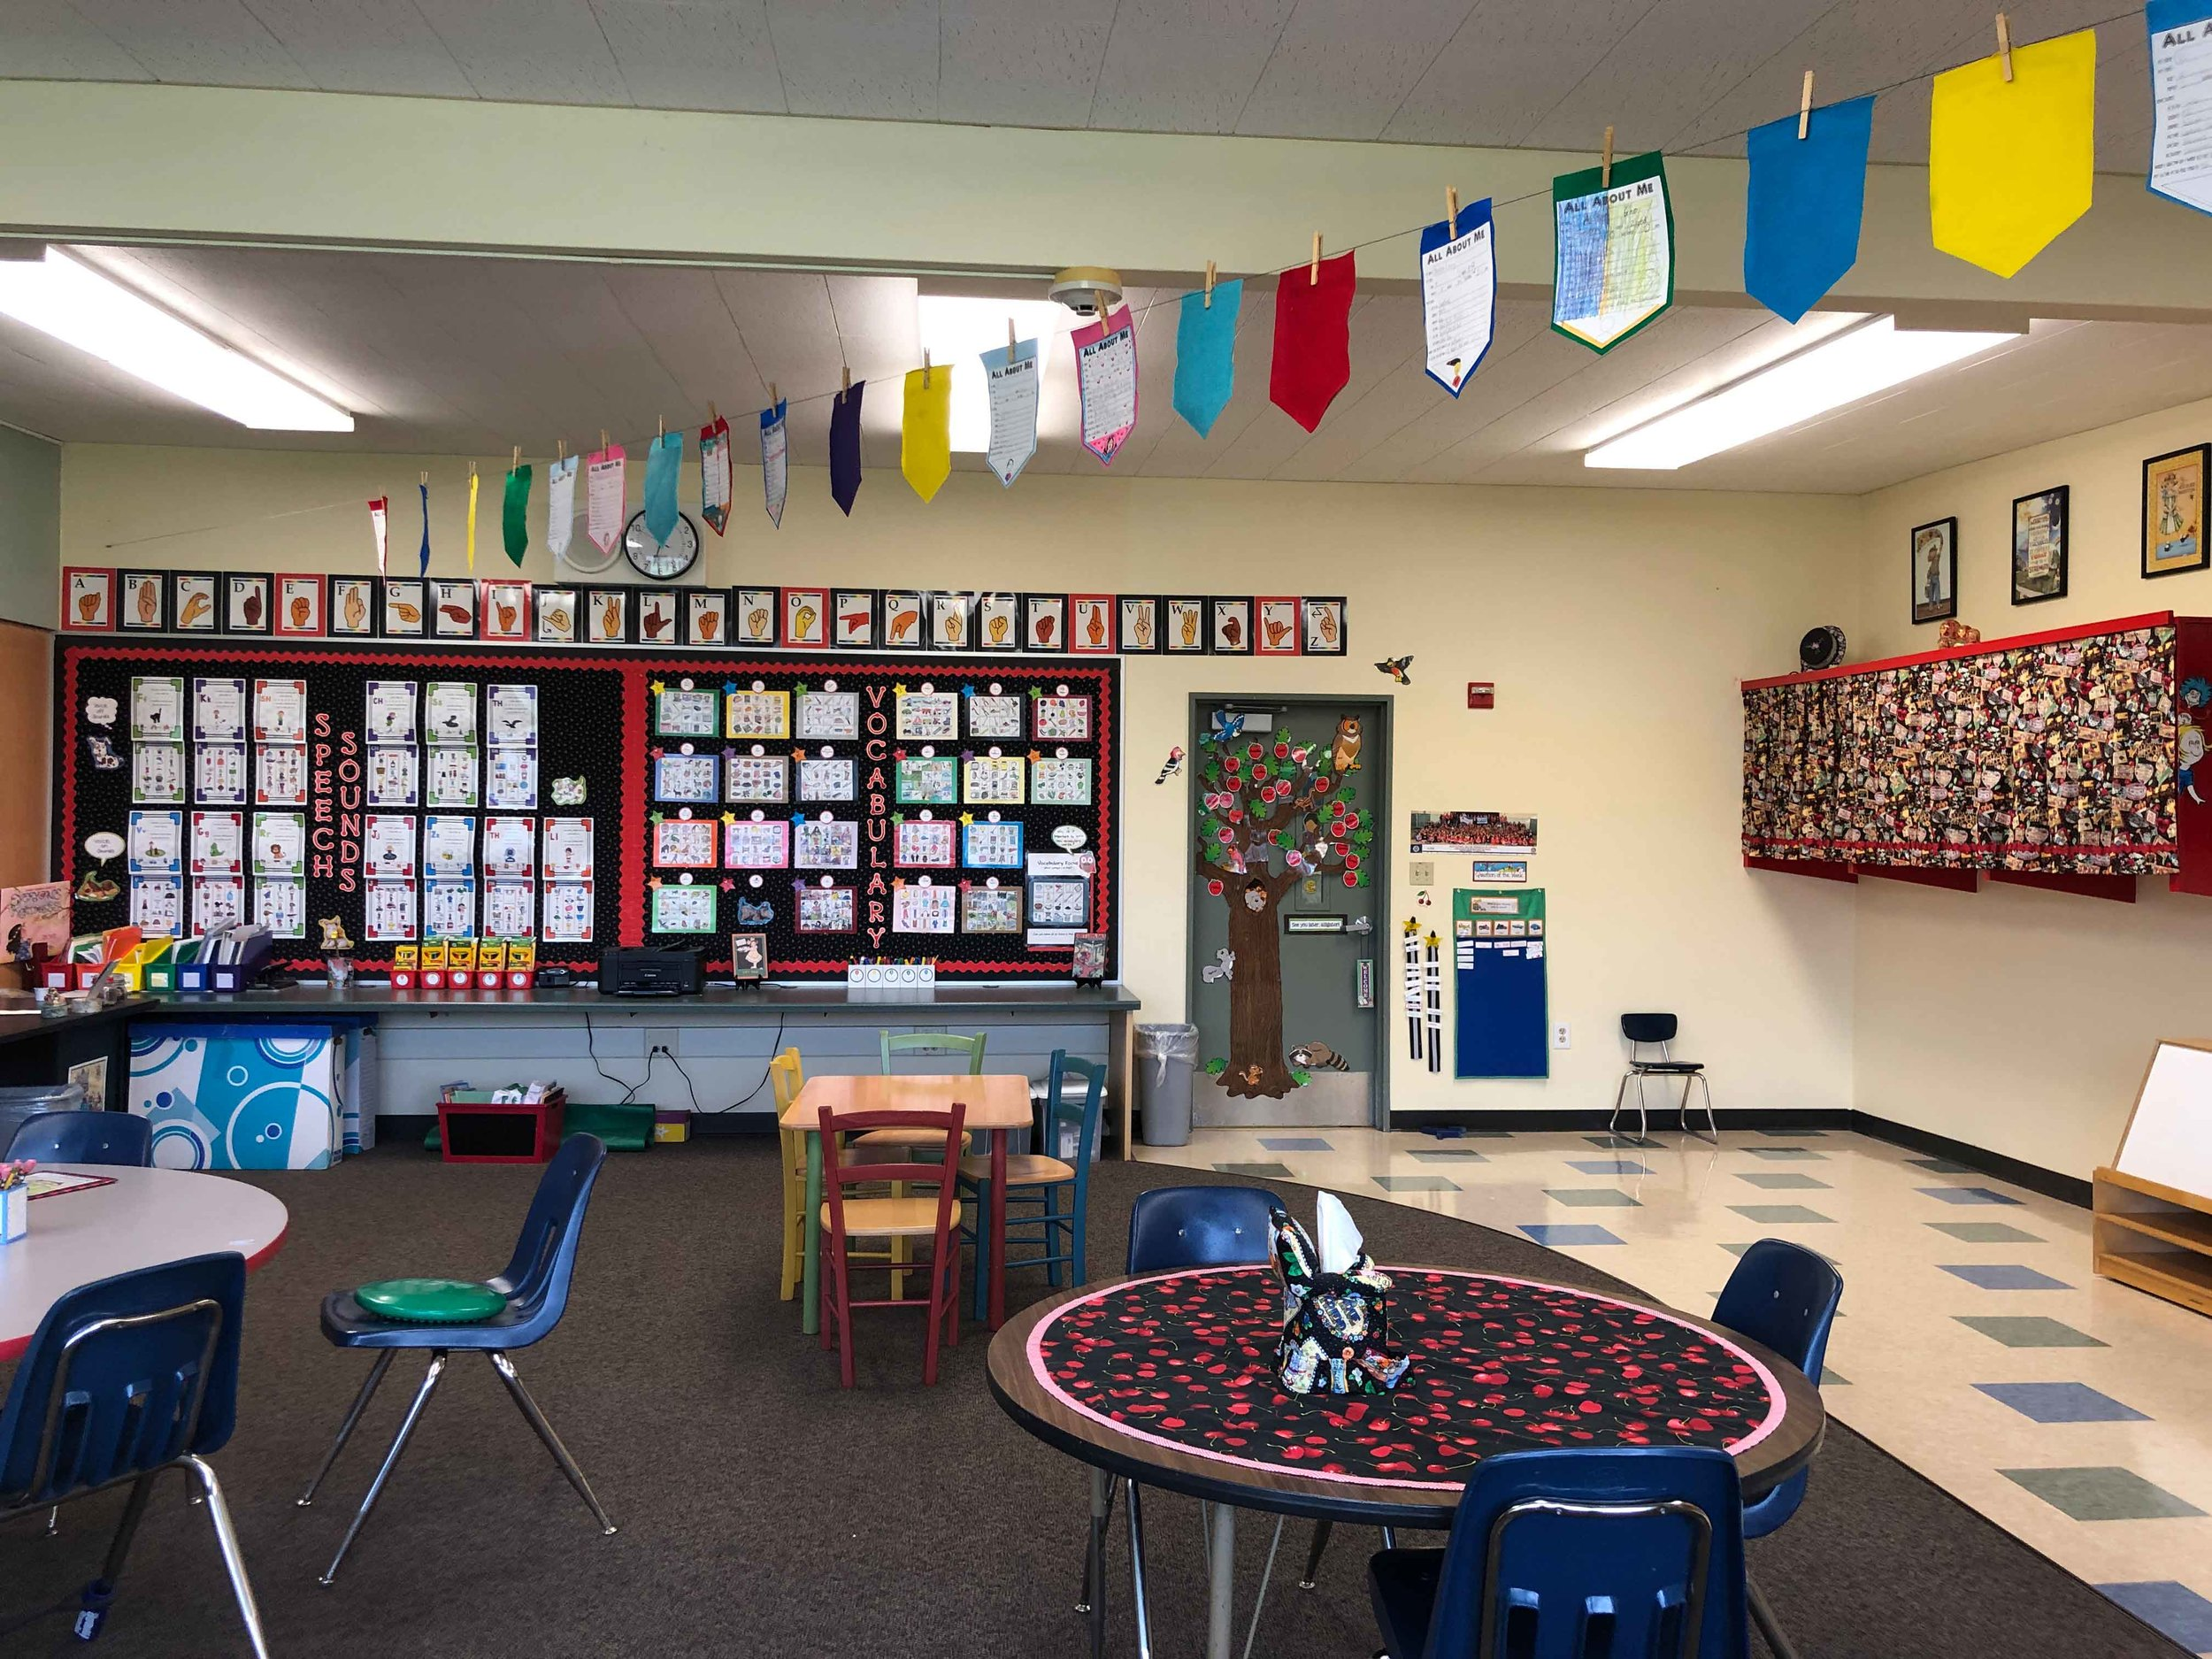 The finished product! My cute classroom at Argonaut.